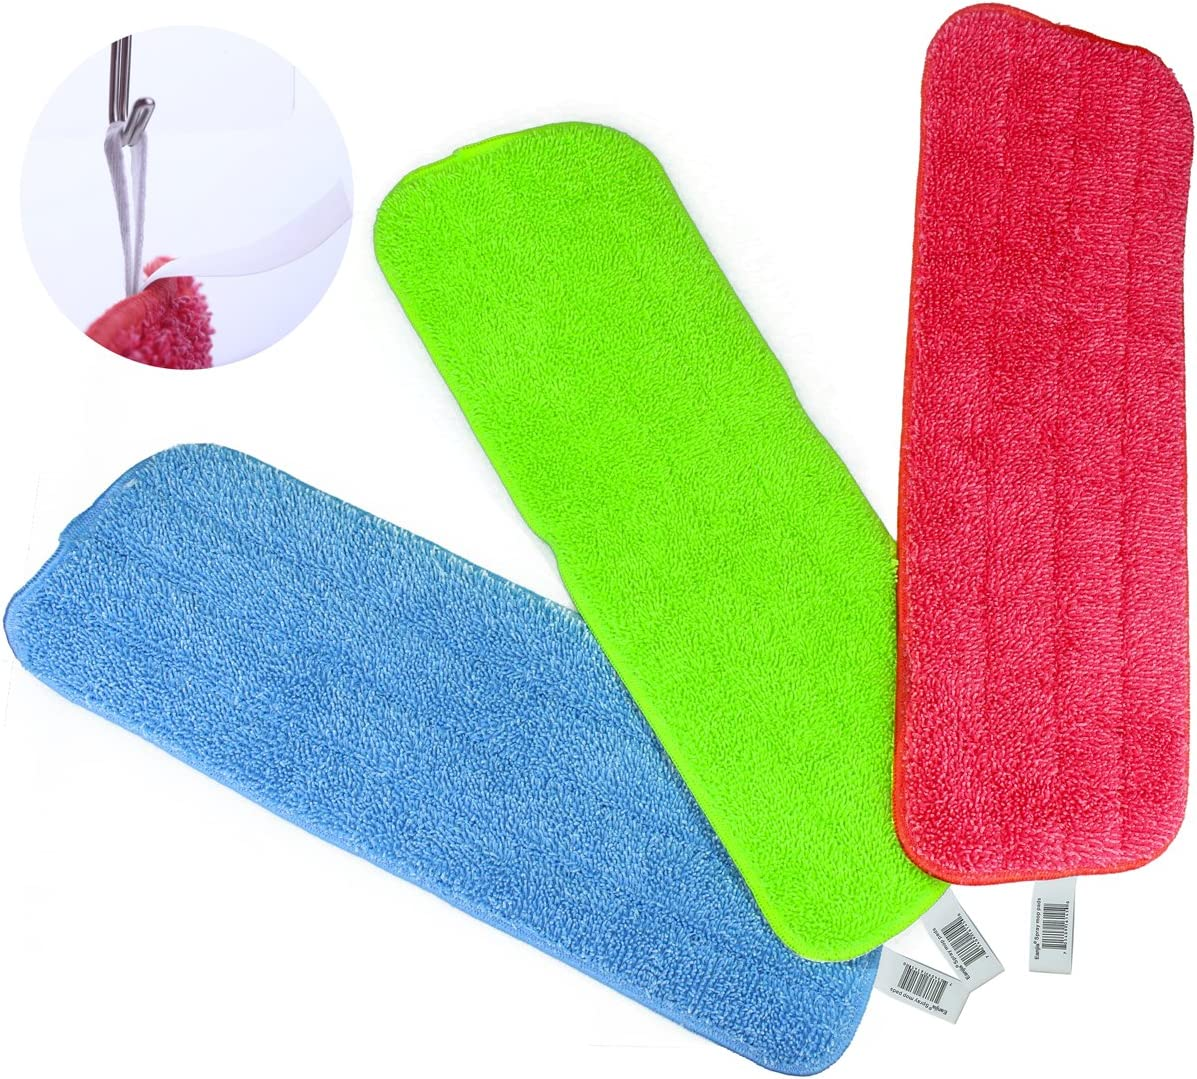 Reveal Mop Max 66% OFF Jacksonville Mall Cleaning Pad Fit Mops Washabl Spray All